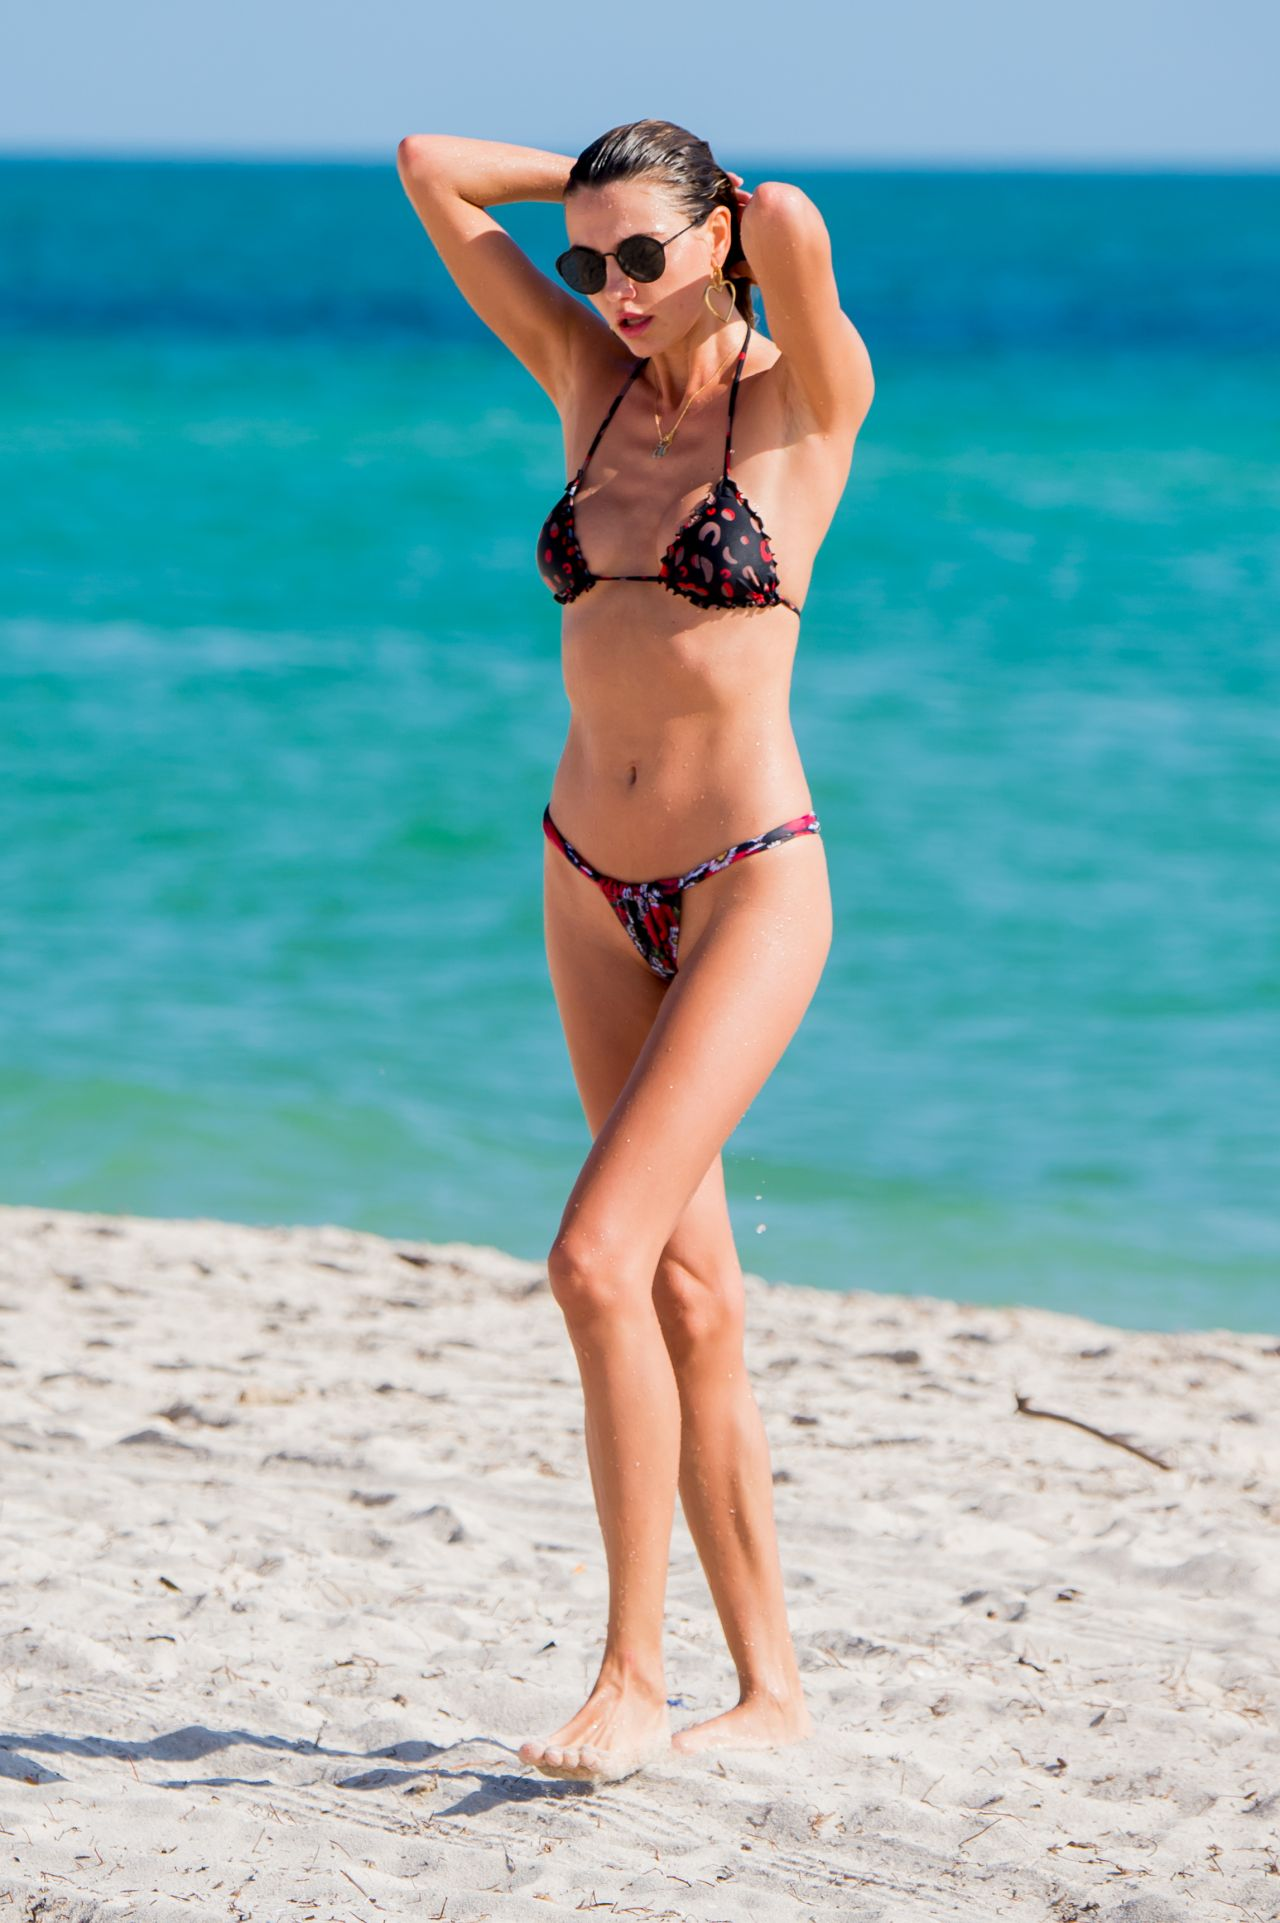 Alina Baikova in Bikini on the beach in Miami Pic 8 of 35